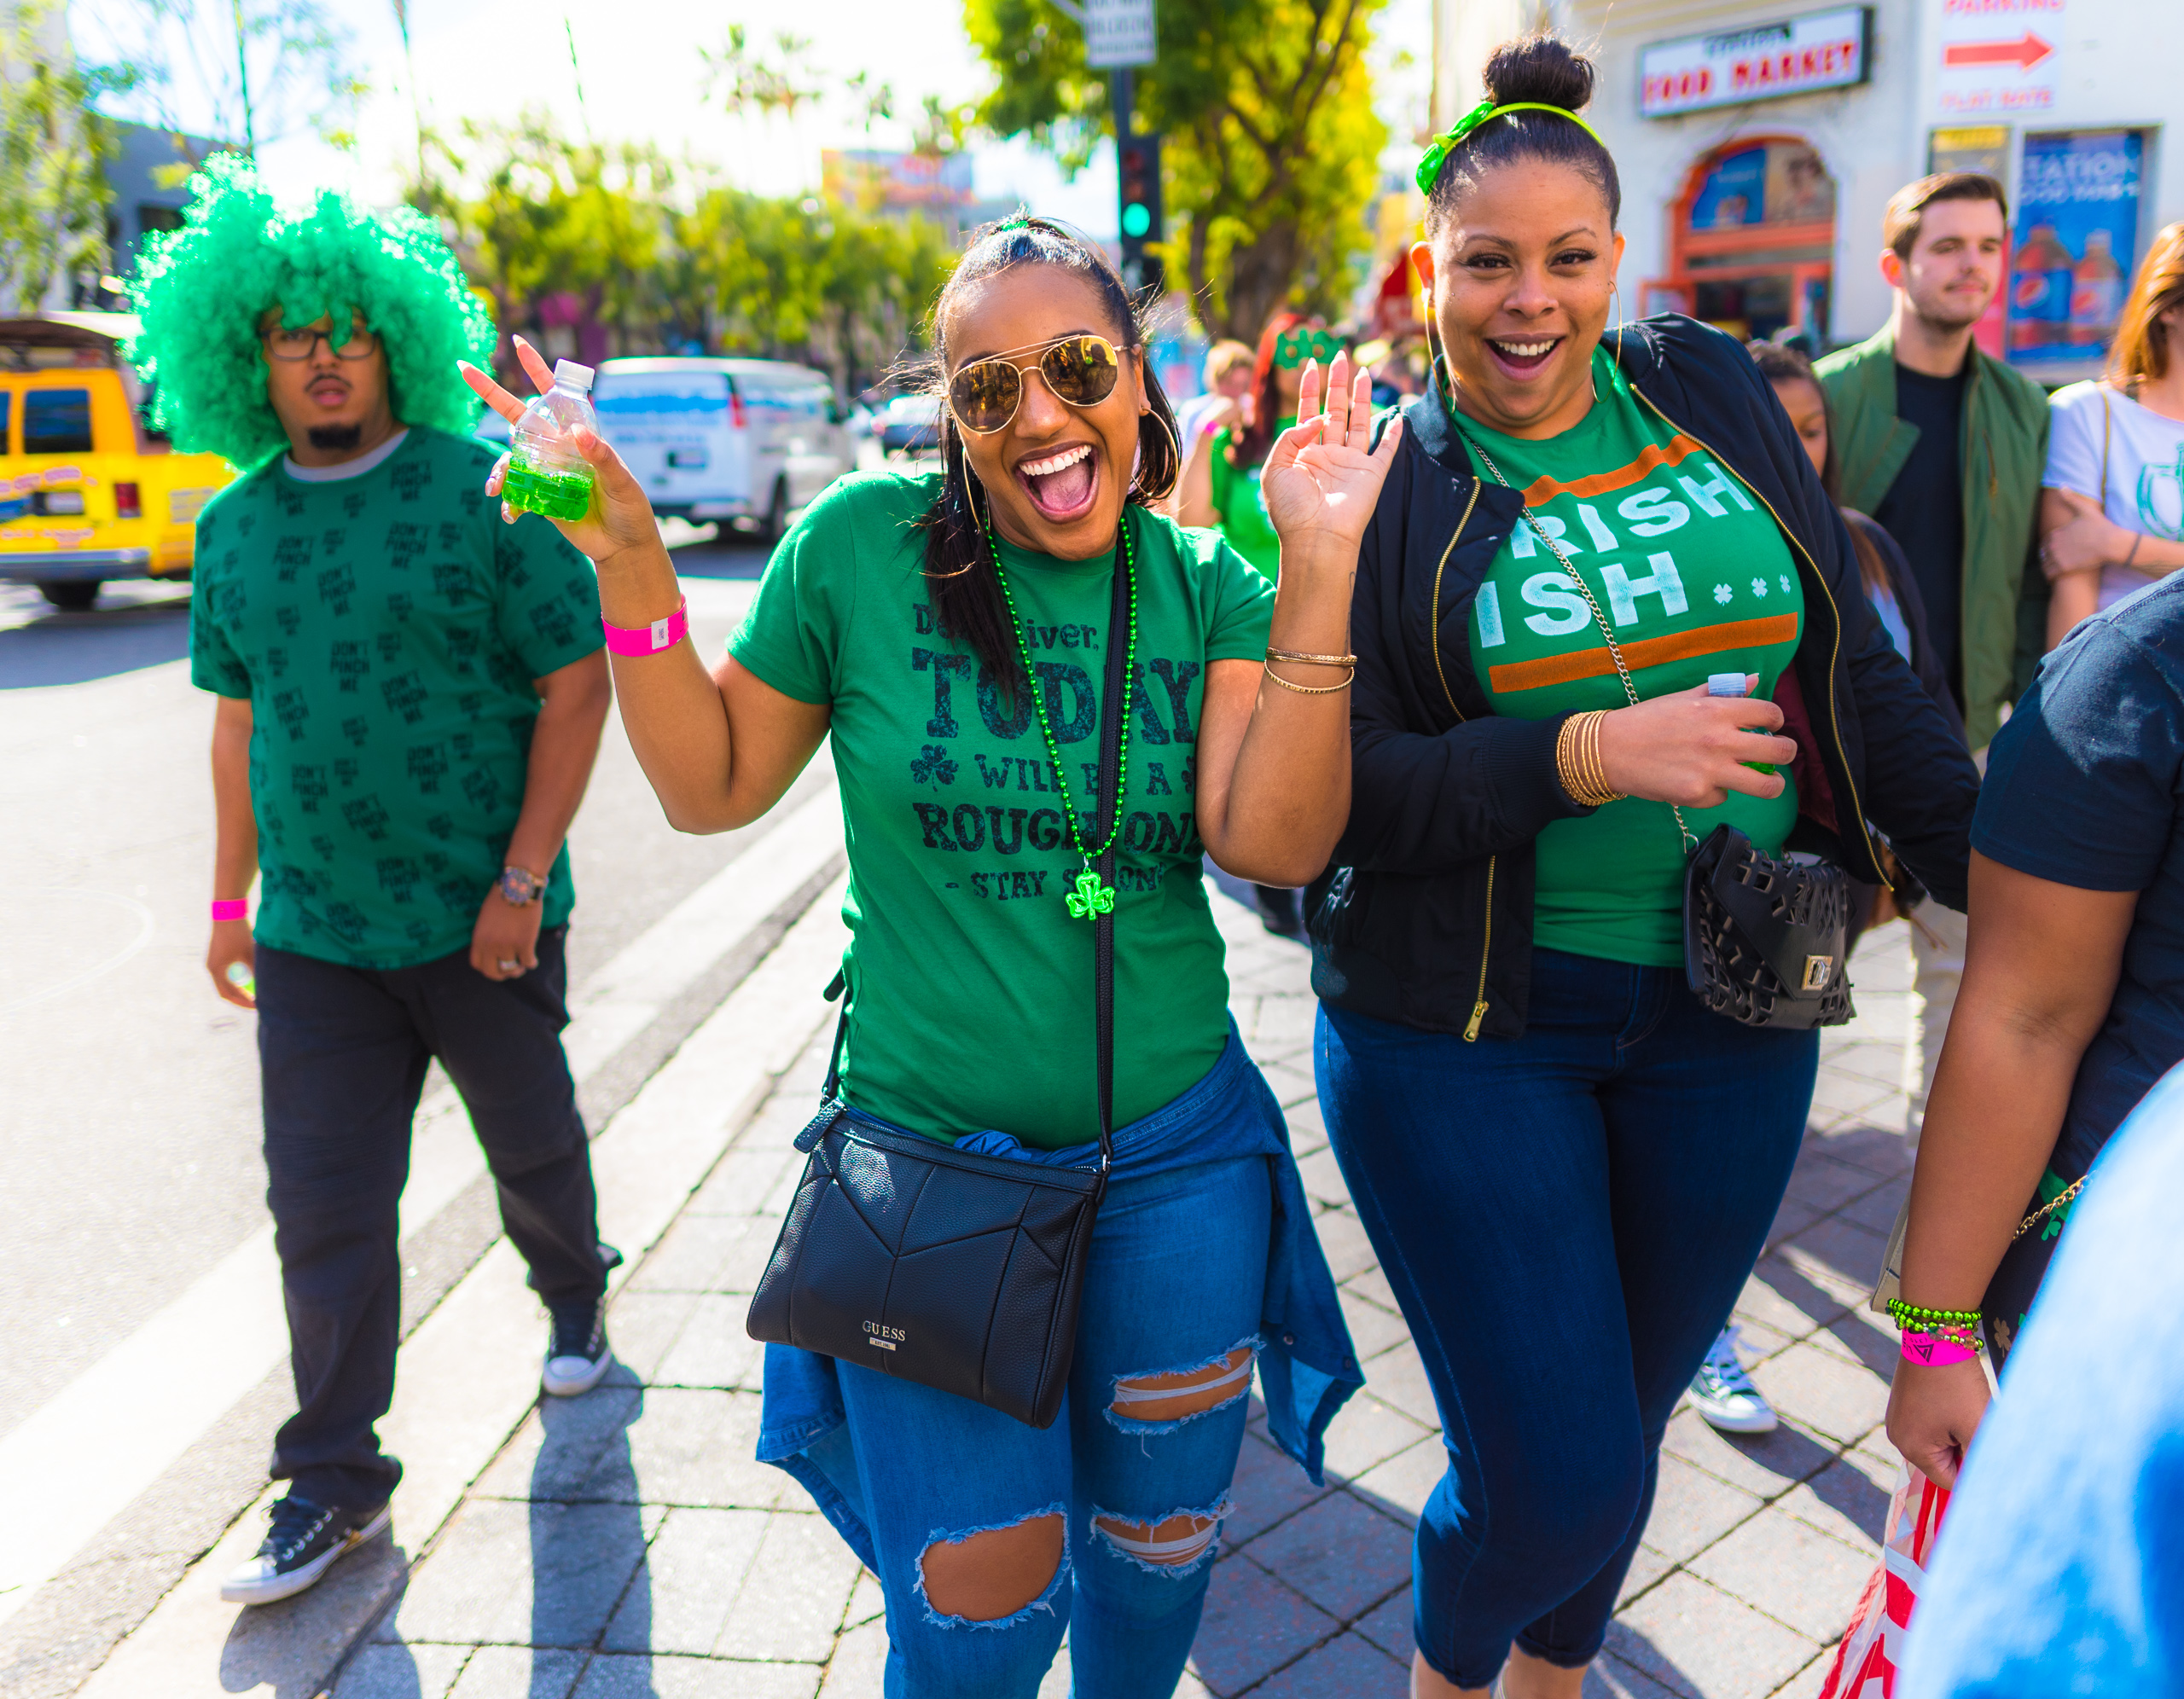 A woman in a green t-shirt and torn blue jeans walks down Hollywood Blvd on Saint Patrick's Day. She holds a bottle with green liquid in one hand, and makes peace signs with both hands. She looks at the camera with a huge smile. Friends also in green walk on either side of her.